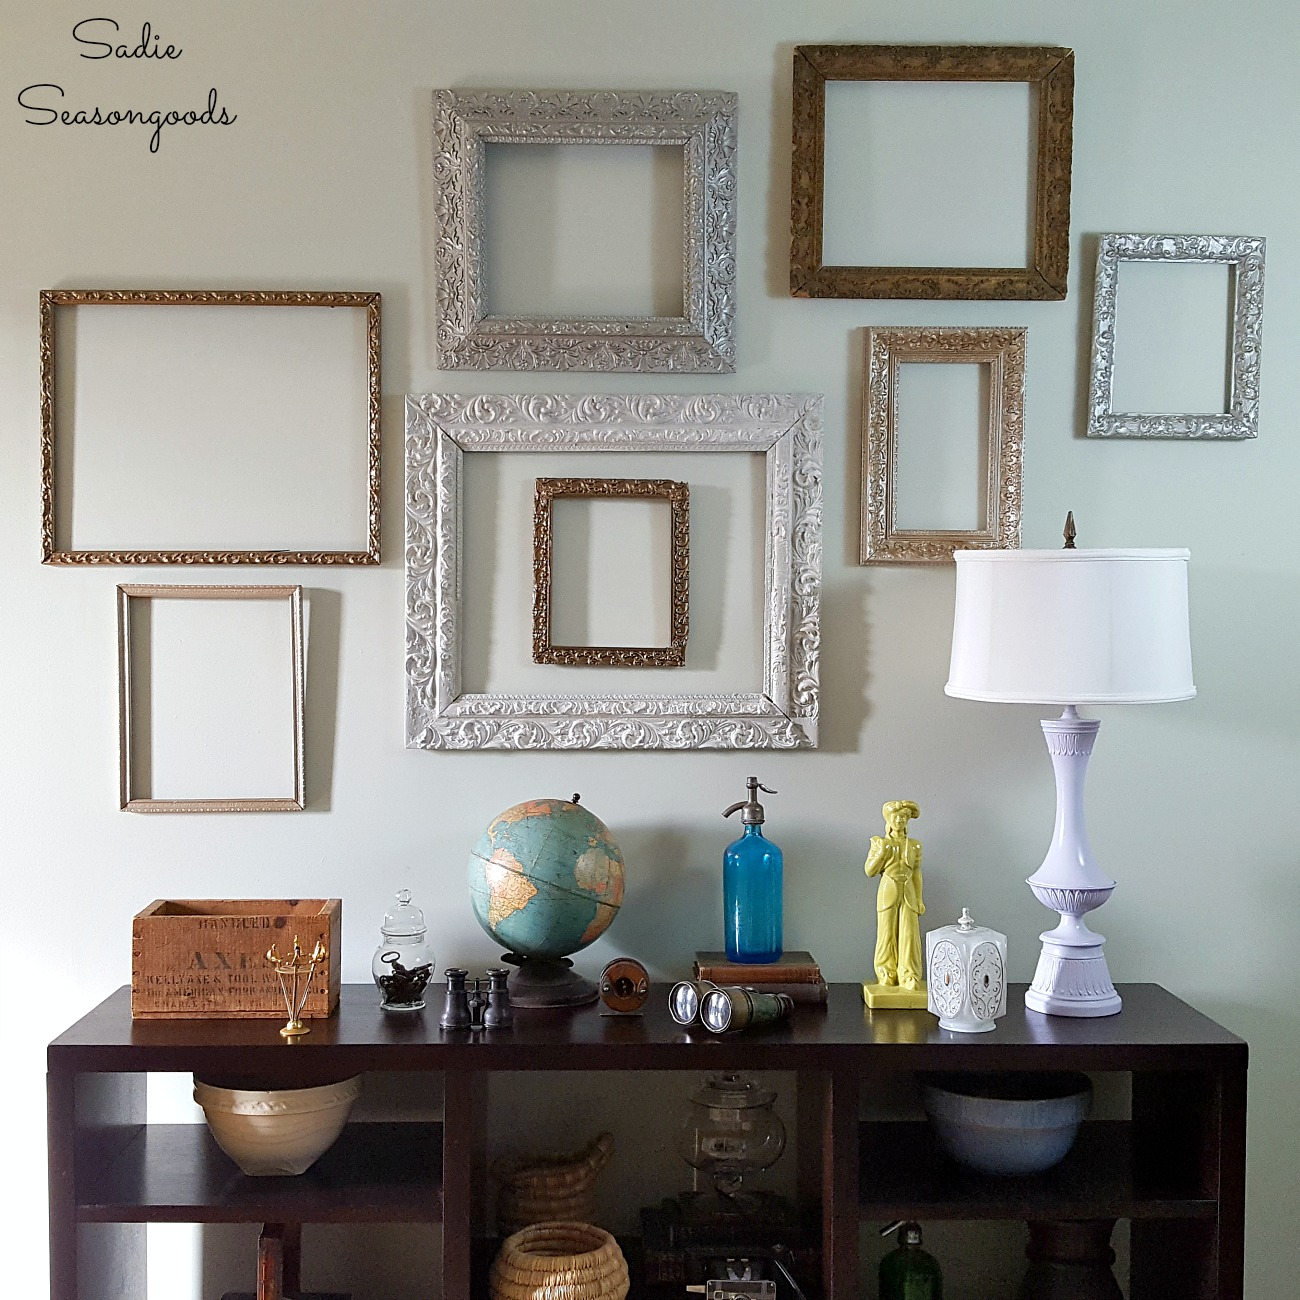 Creating Gallery Wall Frames with Vintage Picture Frames